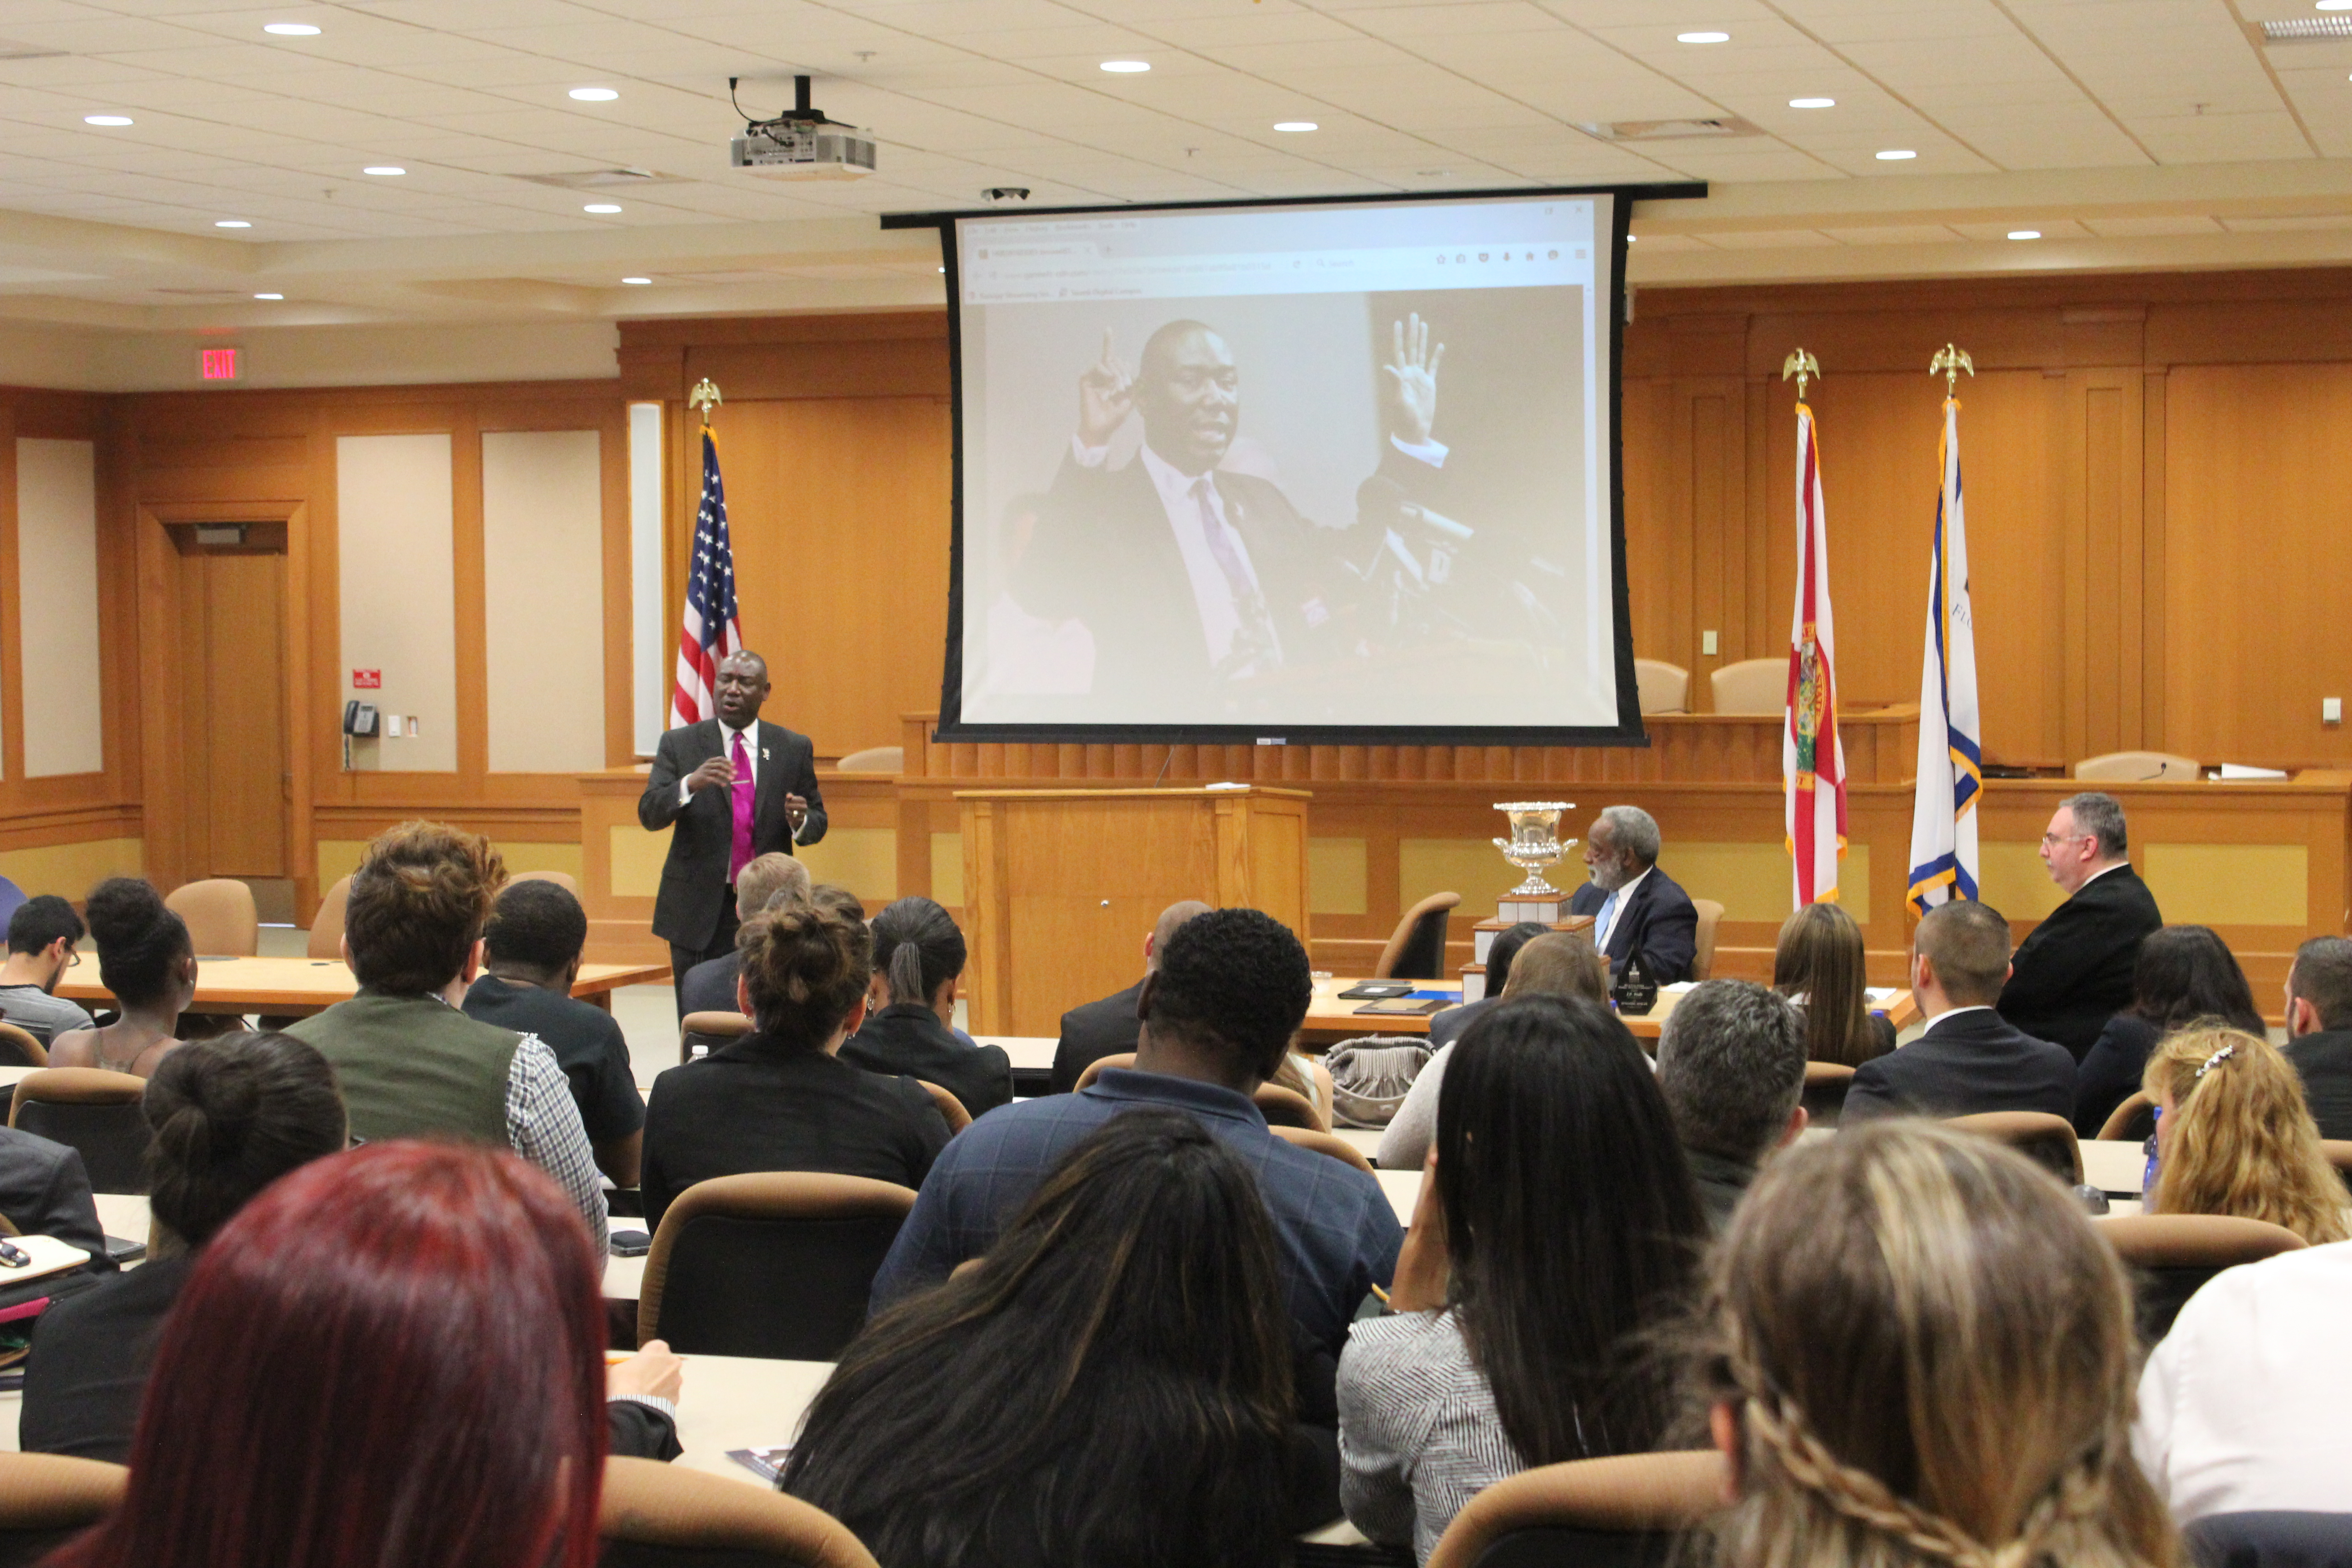 Trial Advocacy program hosts Benjamin Crump for Fifth Annual Great Legal Storytellers